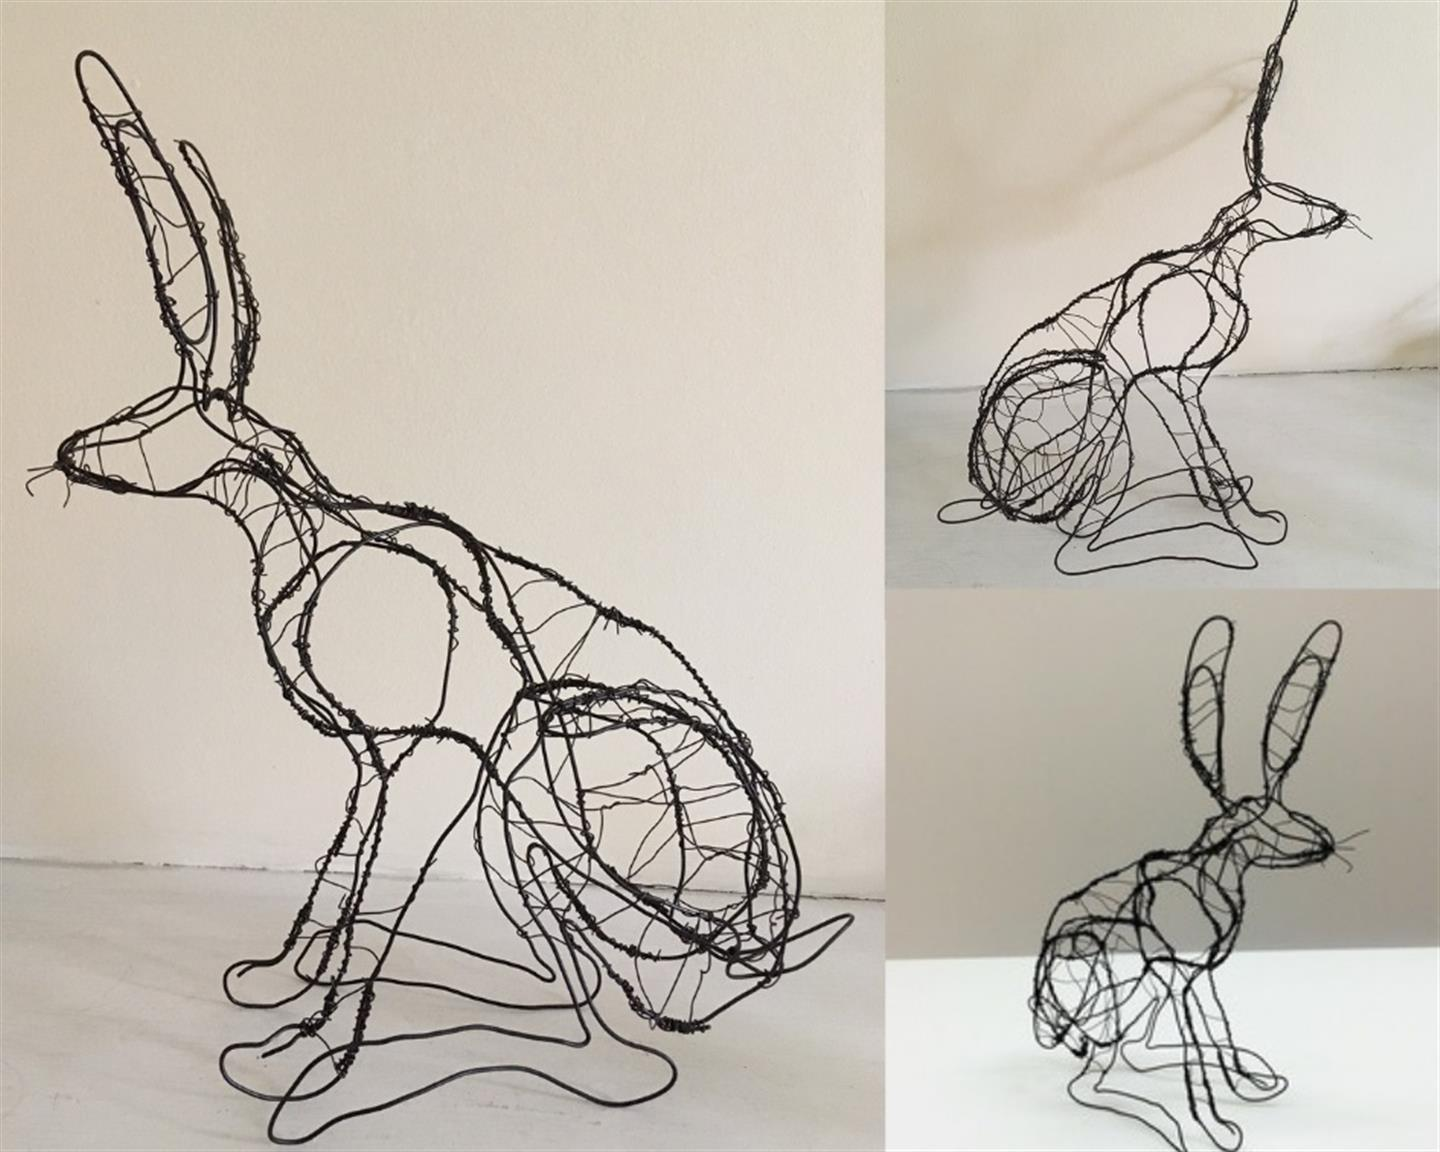 WIRE-WORK SCULPTURE